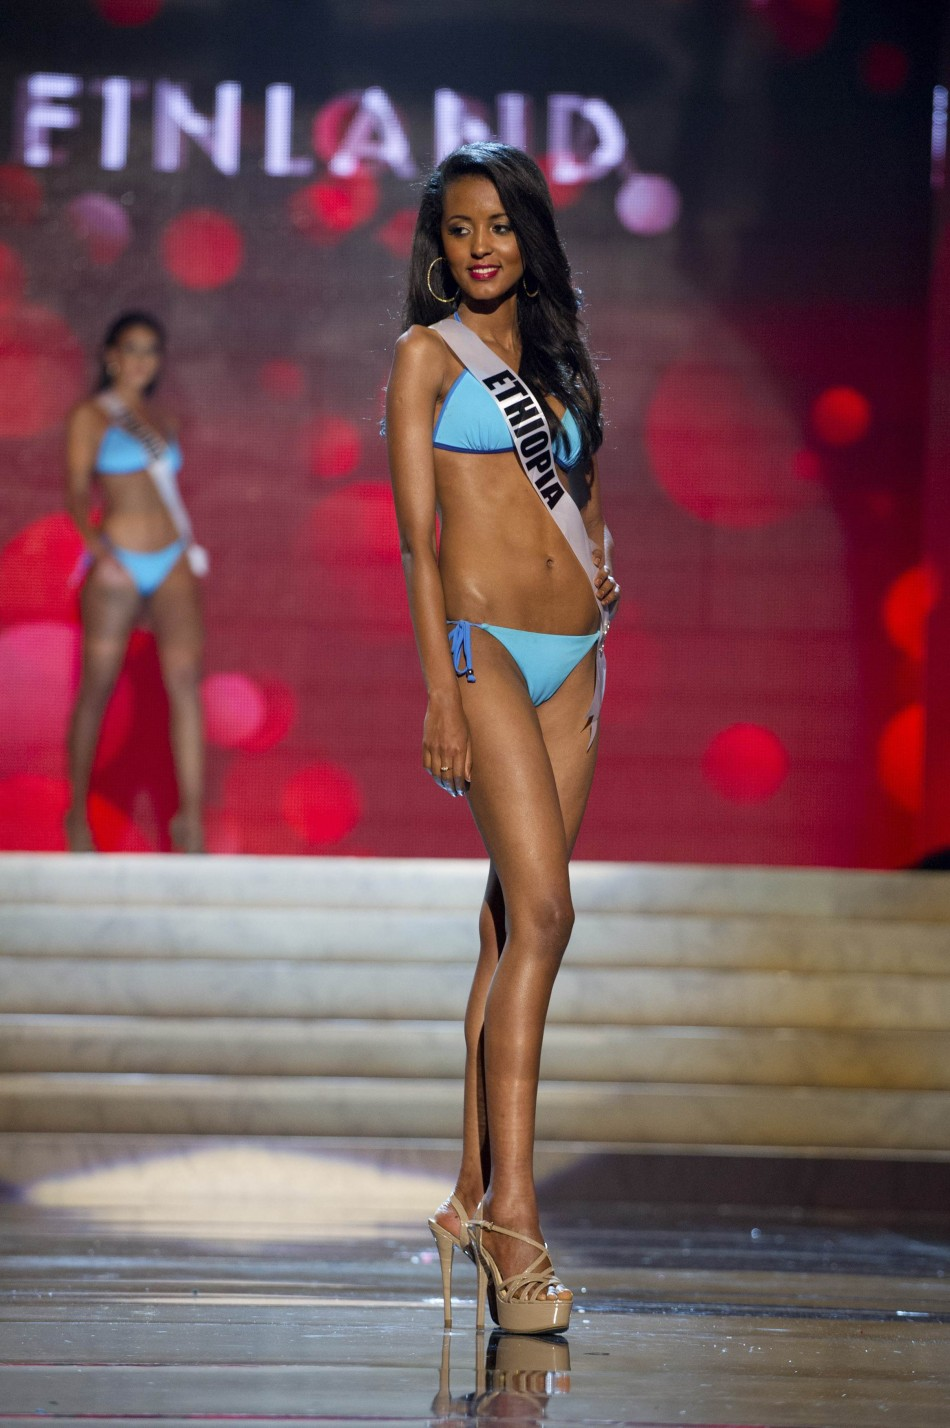 Miss Ethiopia Helen Getachew at the Swimsuit Competition of the 2012 Miss Universe Presentation Show at PH Live in Las Vegas